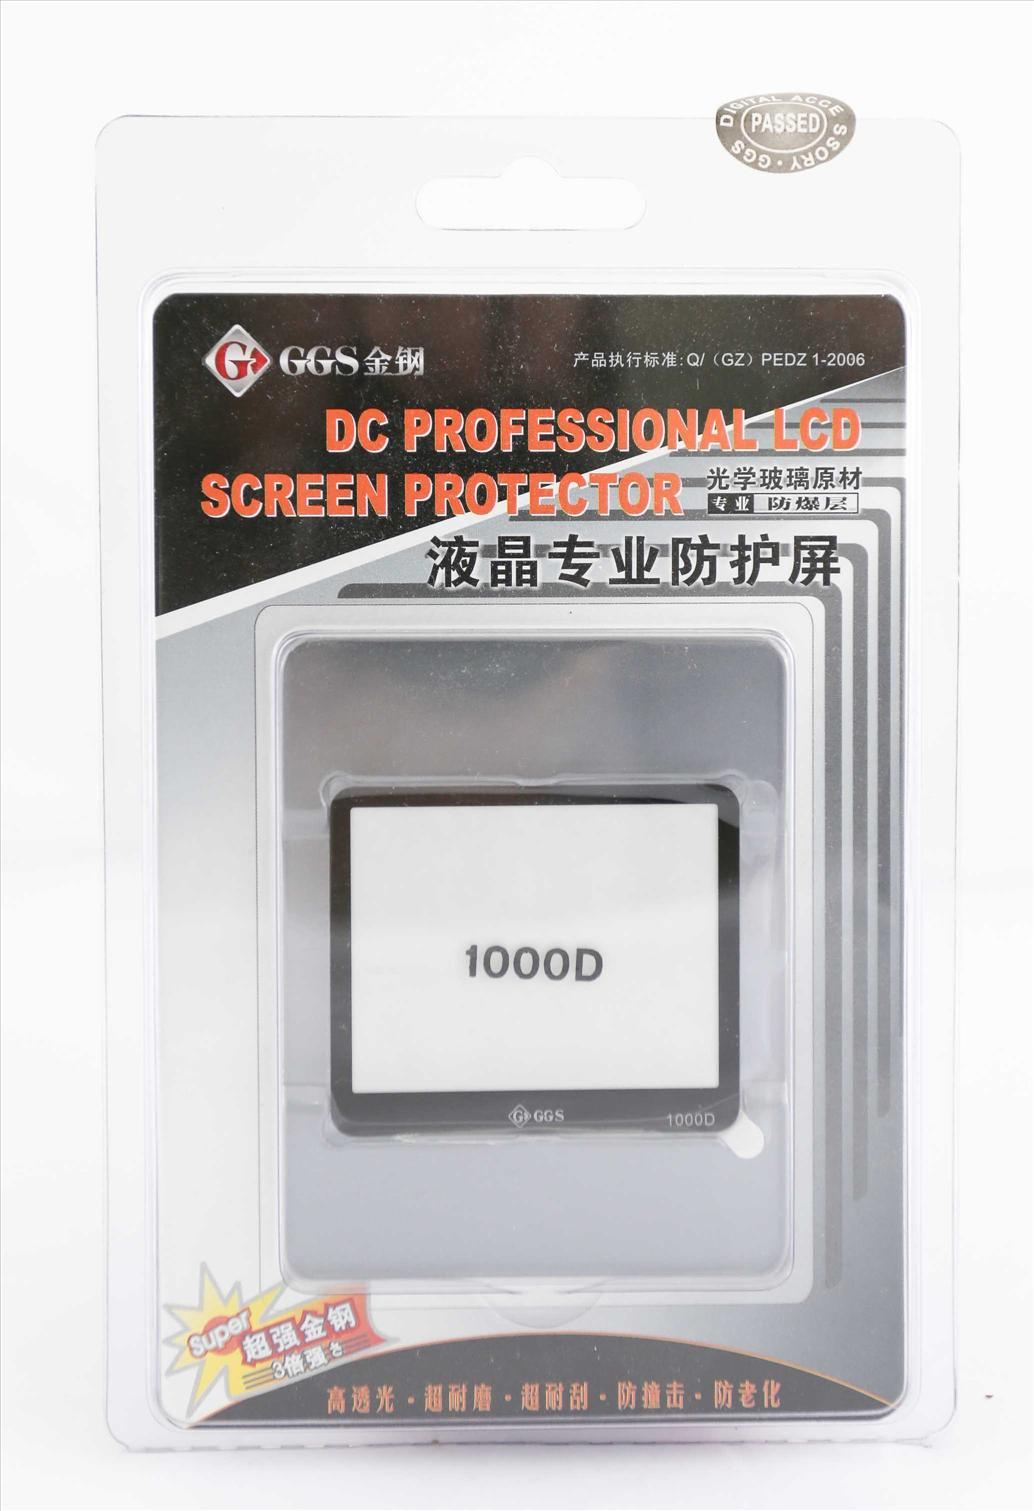 GGS LCD Screen Protector- Canon 1000D